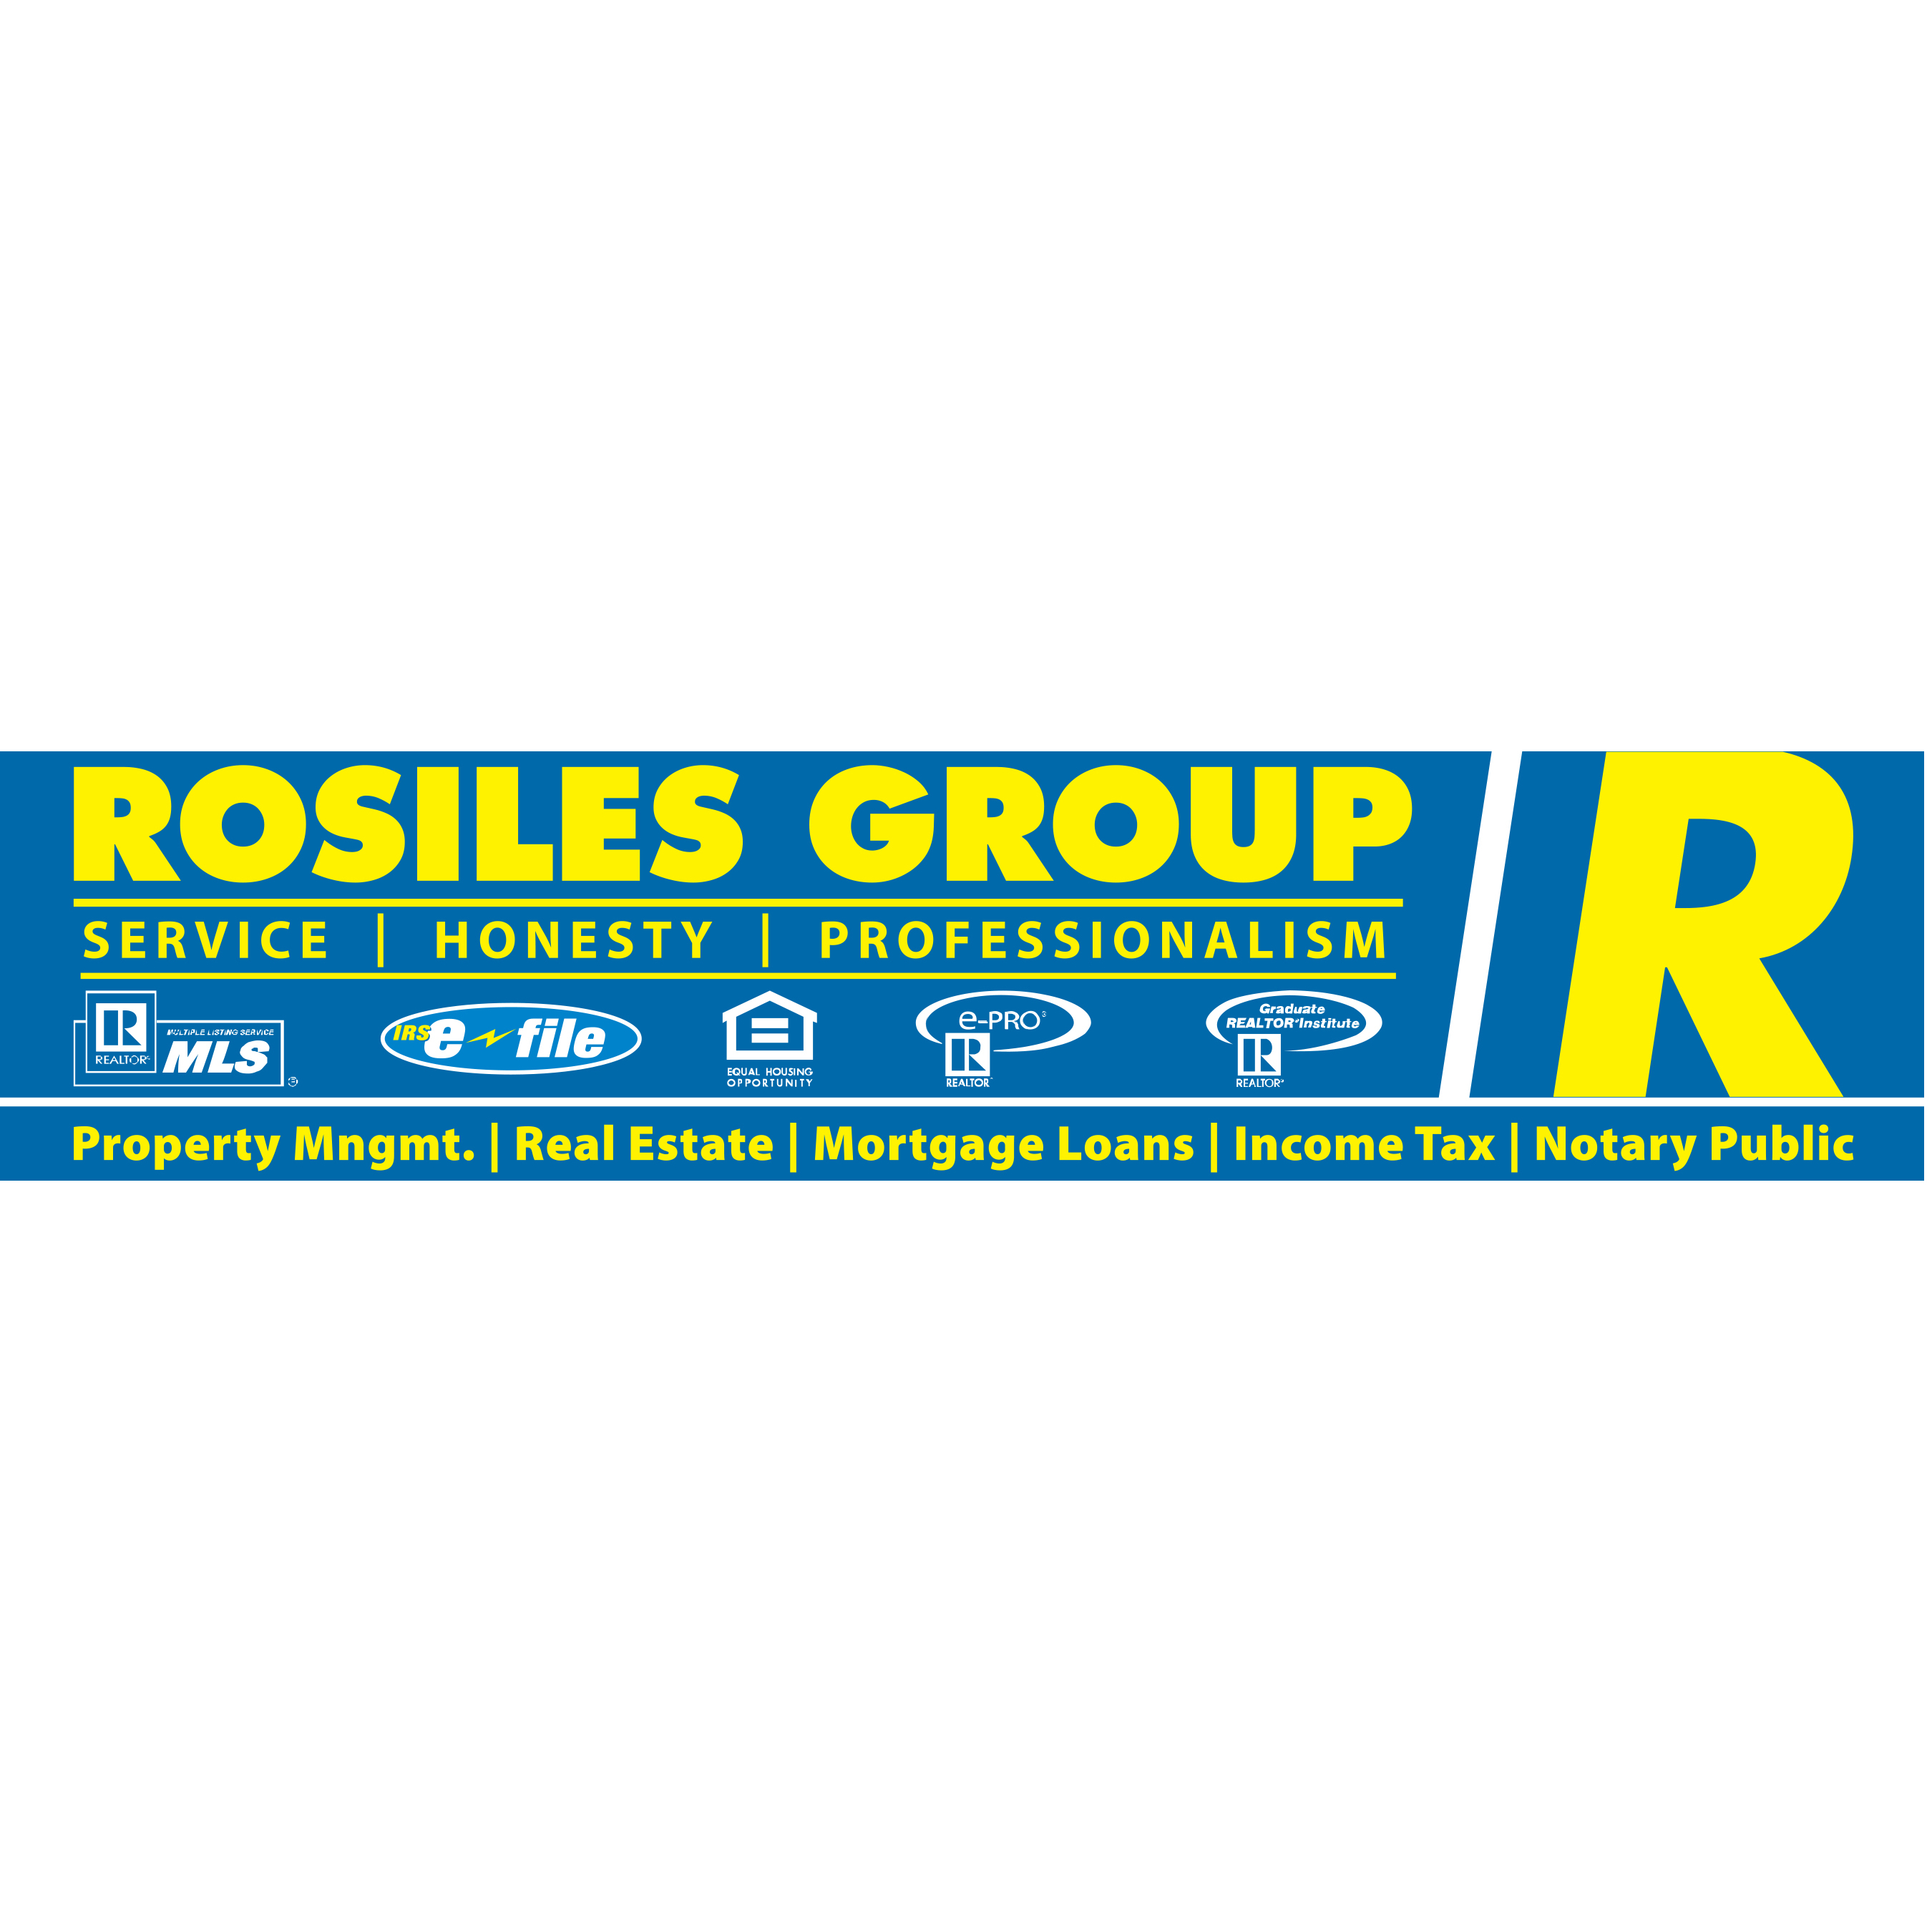 Rosiles Group